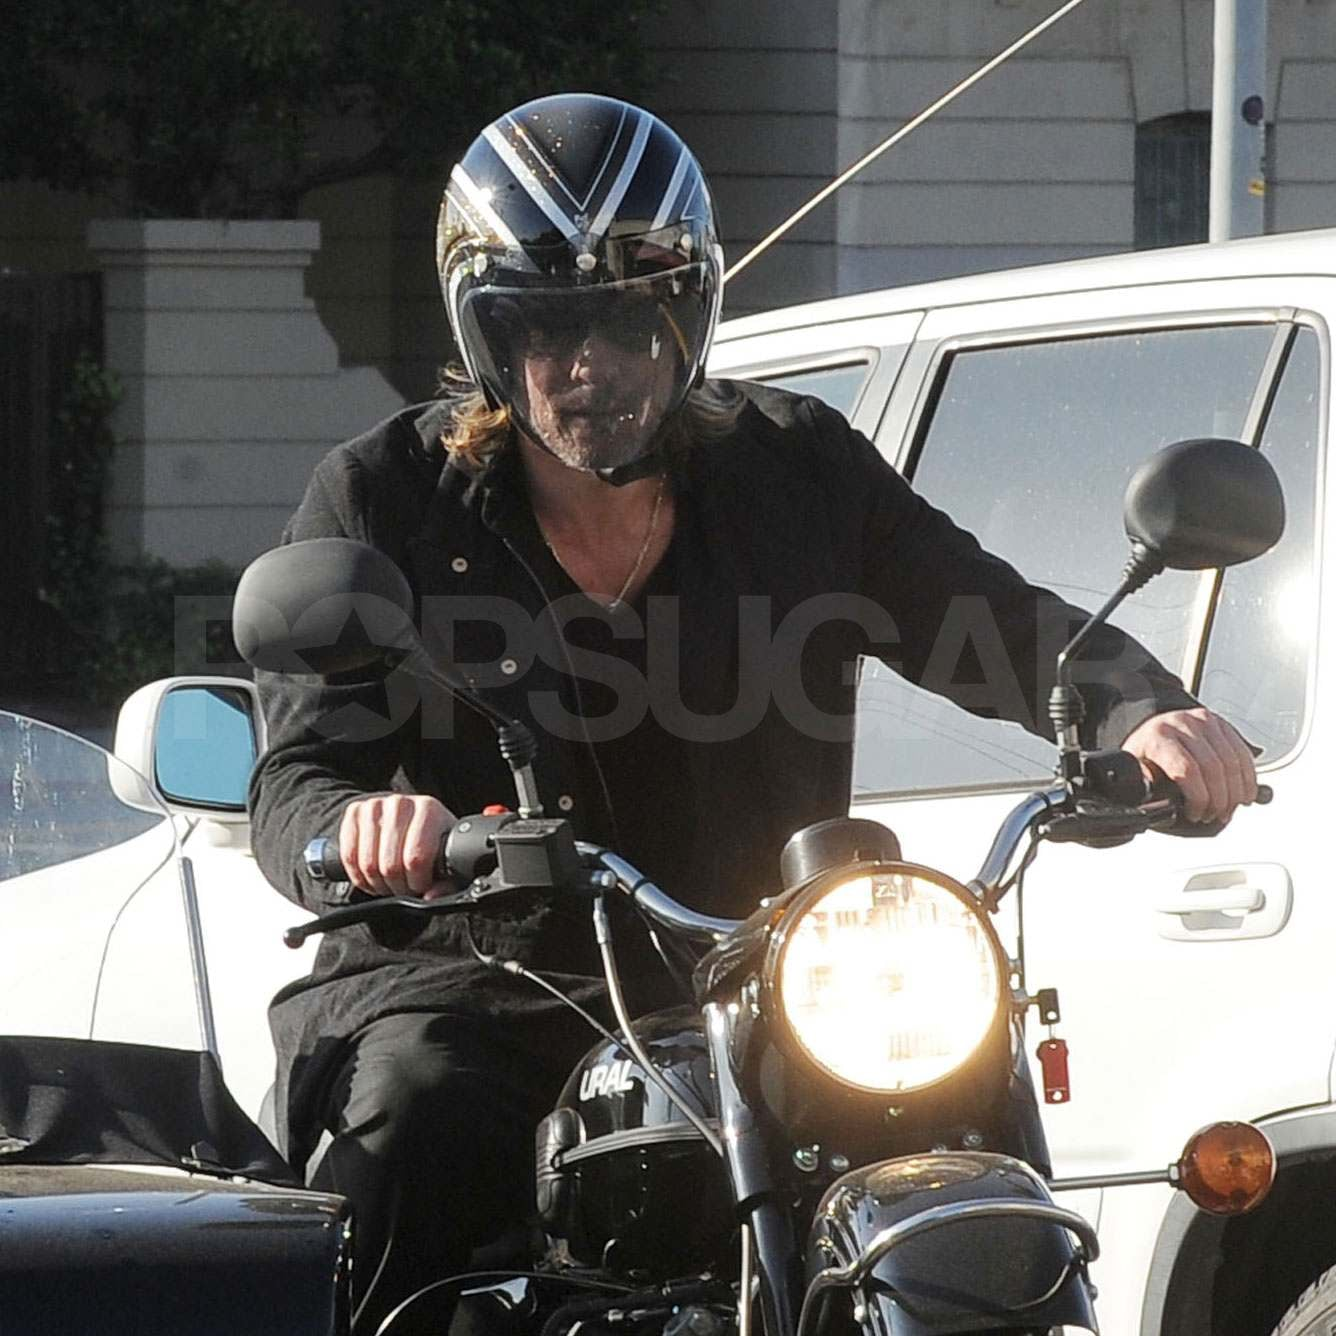 Brad Pitt on a motorcycle.